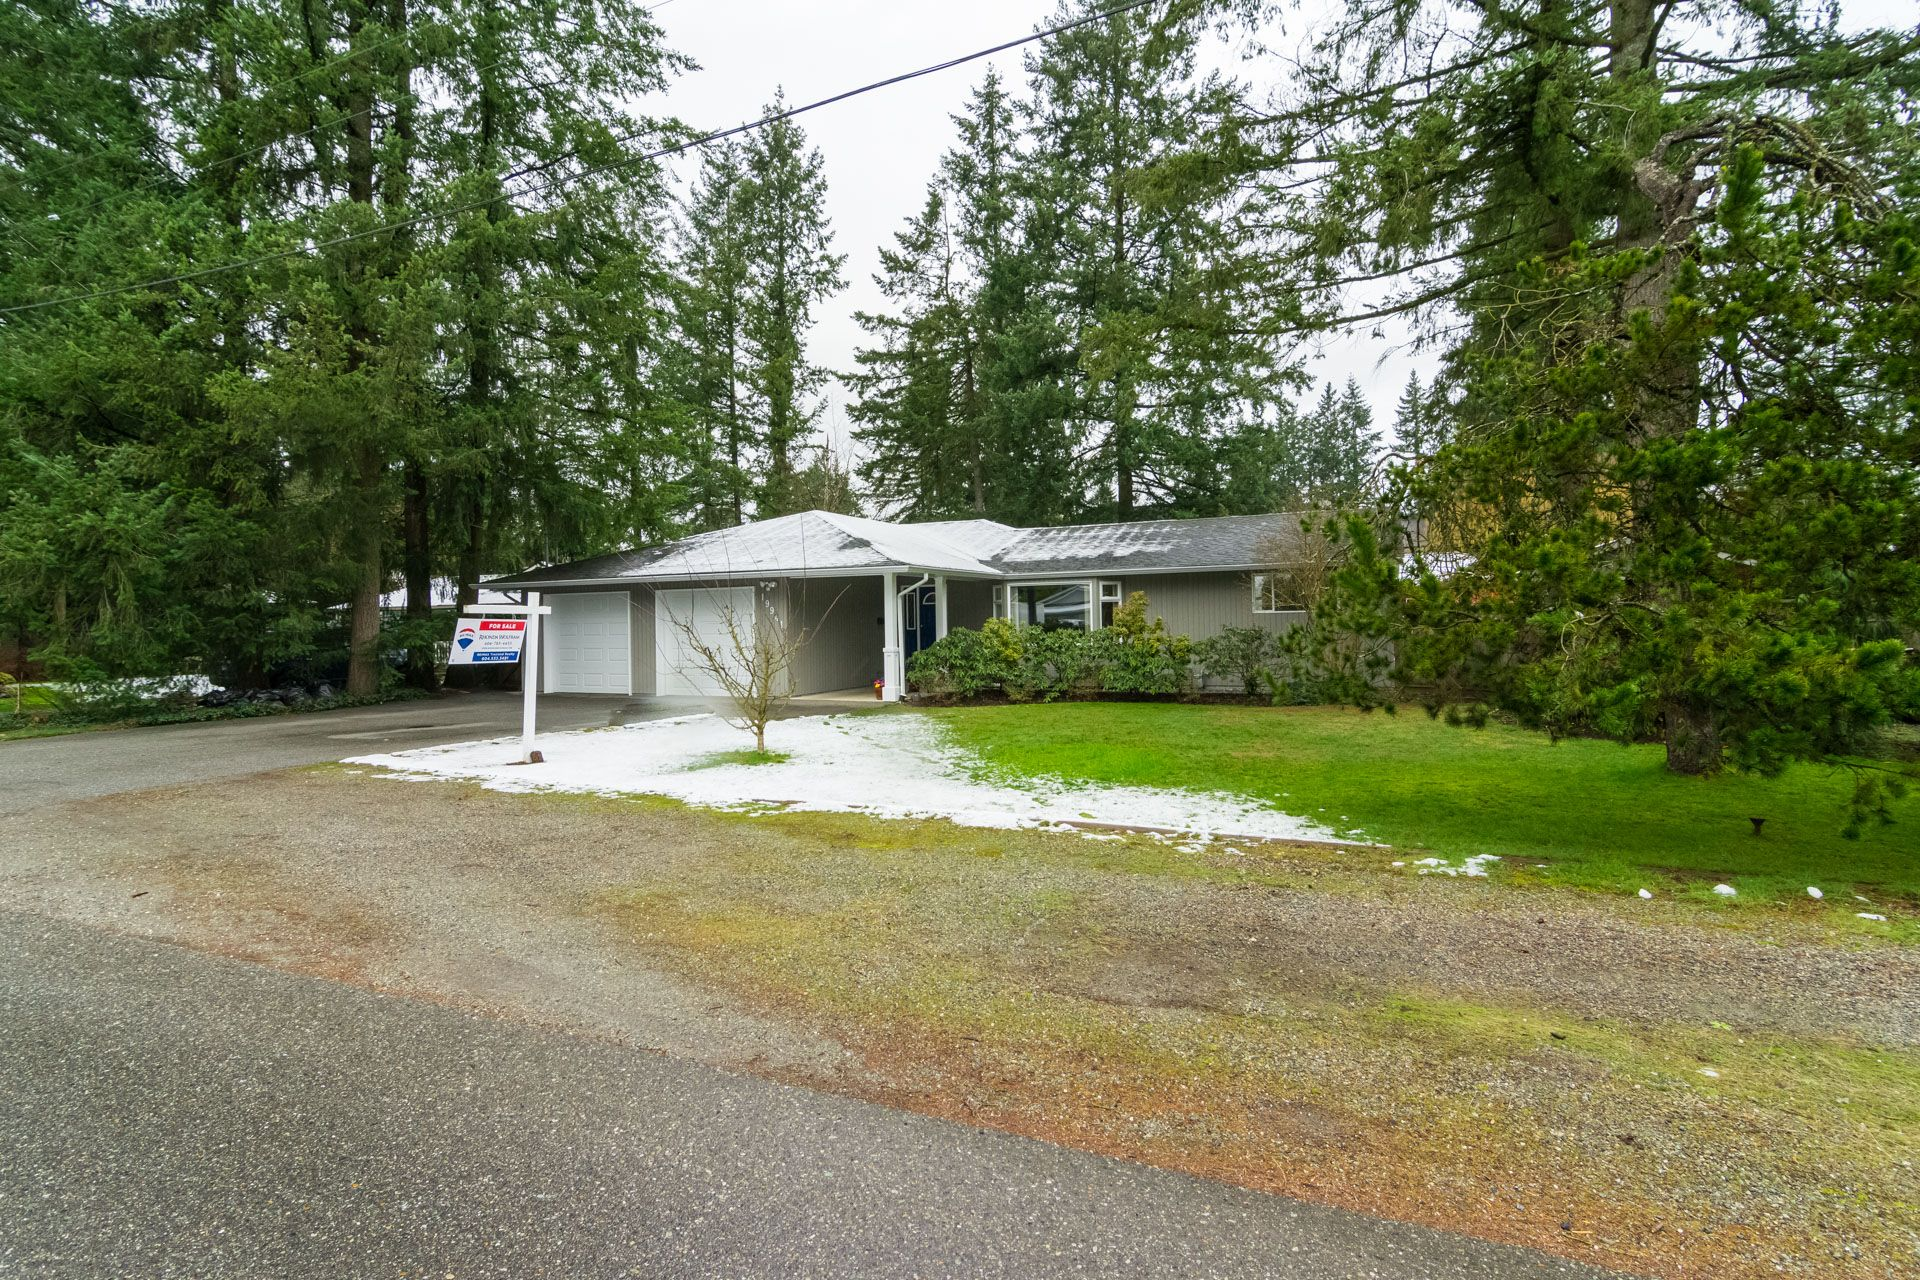 """Photo 4: Photos: 19941 37 Avenue in Langley: Brookswood Langley House for sale in """"Brookswood"""" : MLS®# R2240474"""